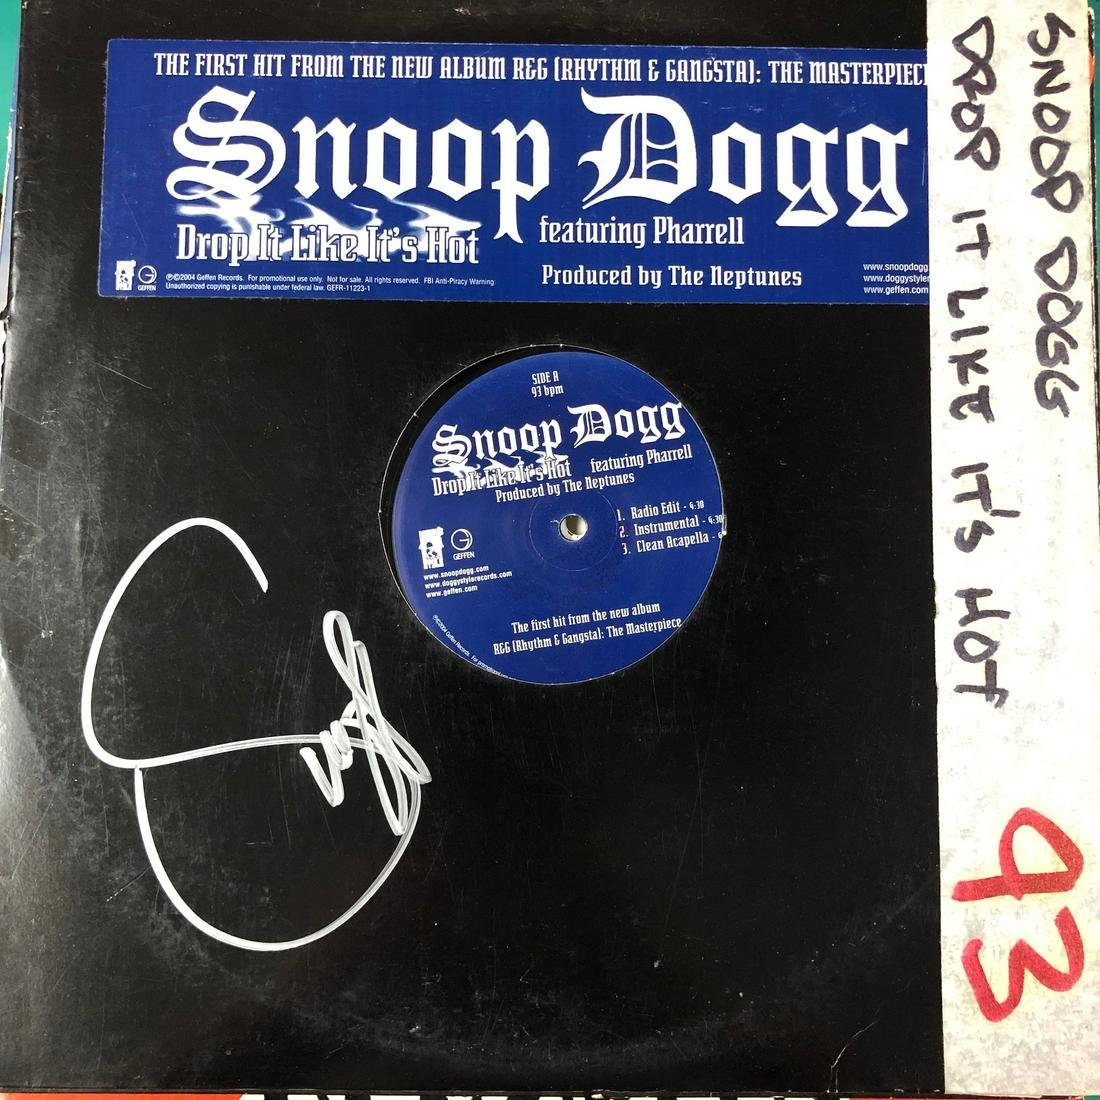 Snoop Dogg Autographed Album Cover